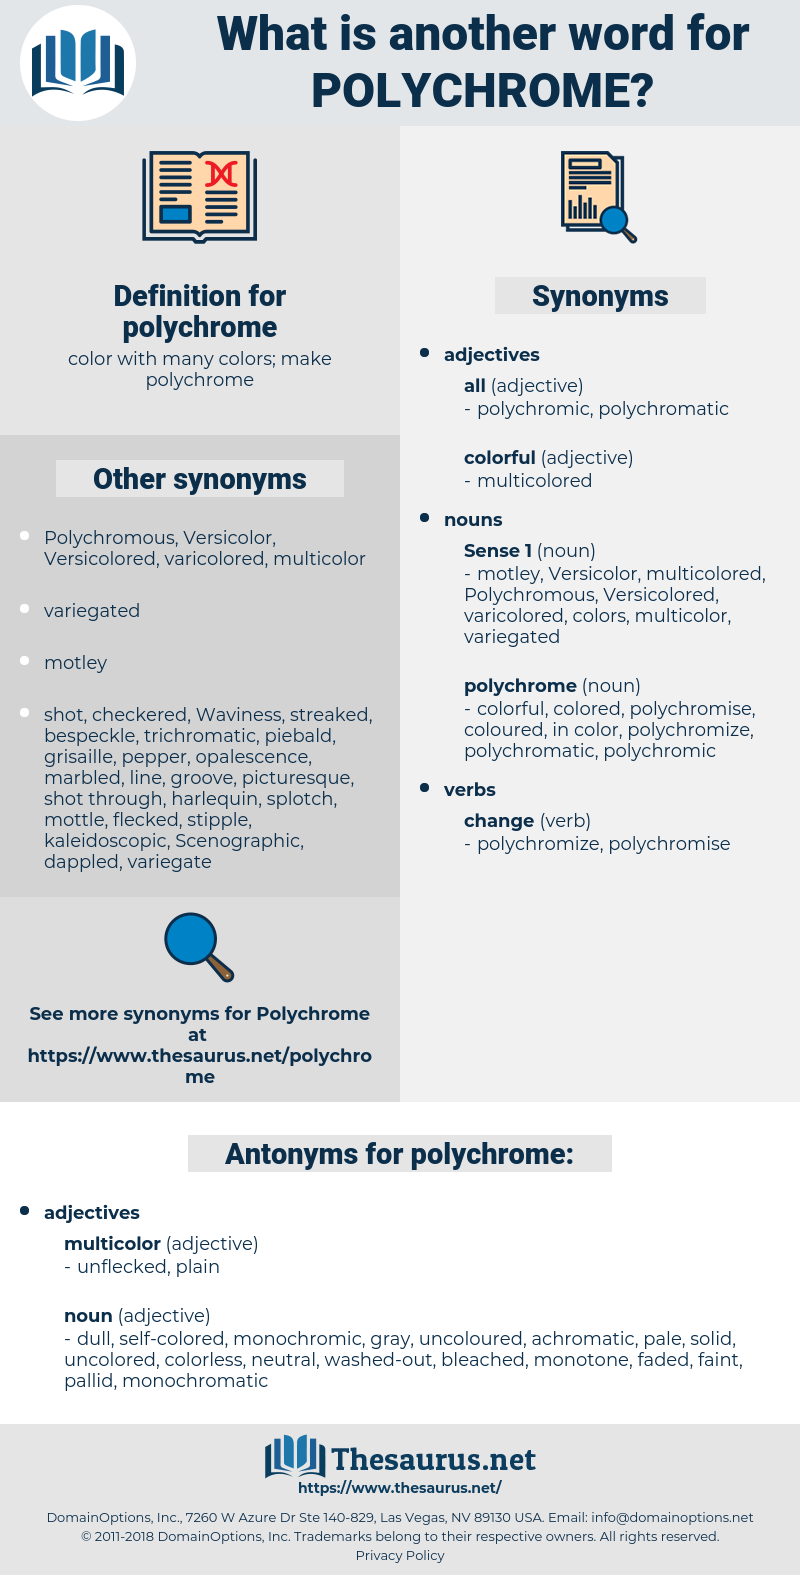 polychrome, synonym polychrome, another word for polychrome, words like polychrome, thesaurus polychrome